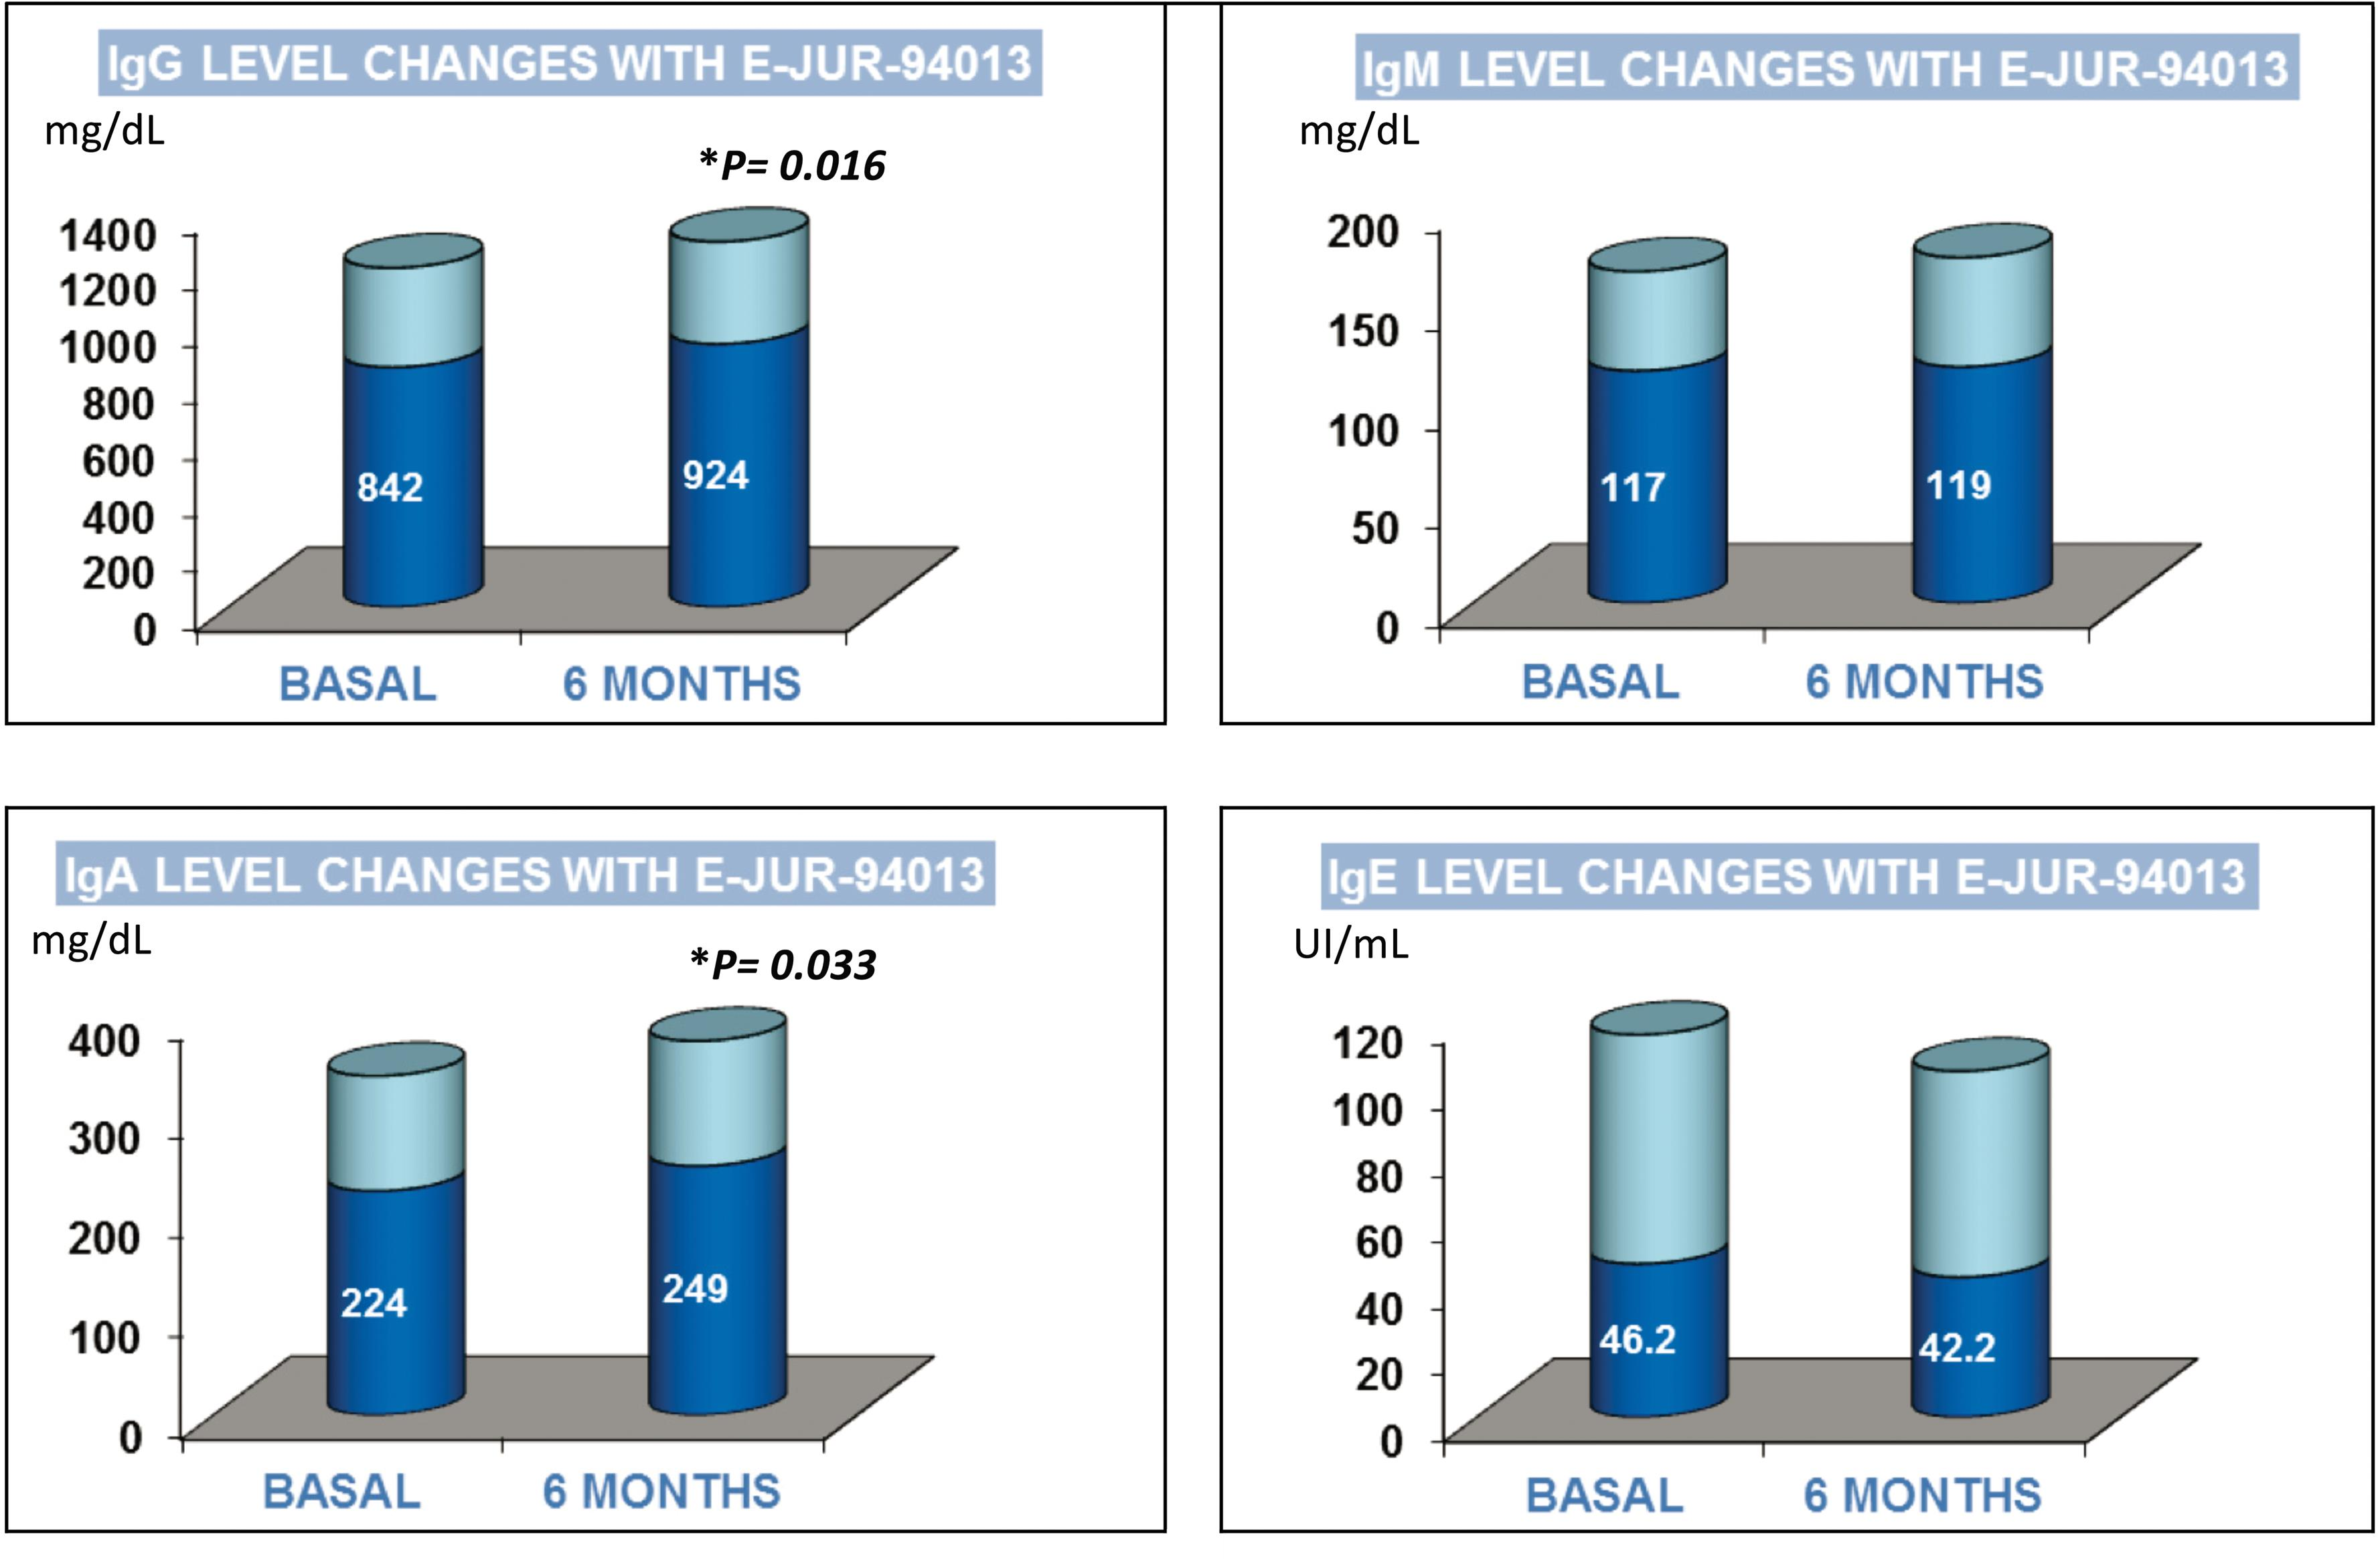 Serum immunoglobulin levels after 750 mg/day (3 capsules) of DefenVid® for 6 months.